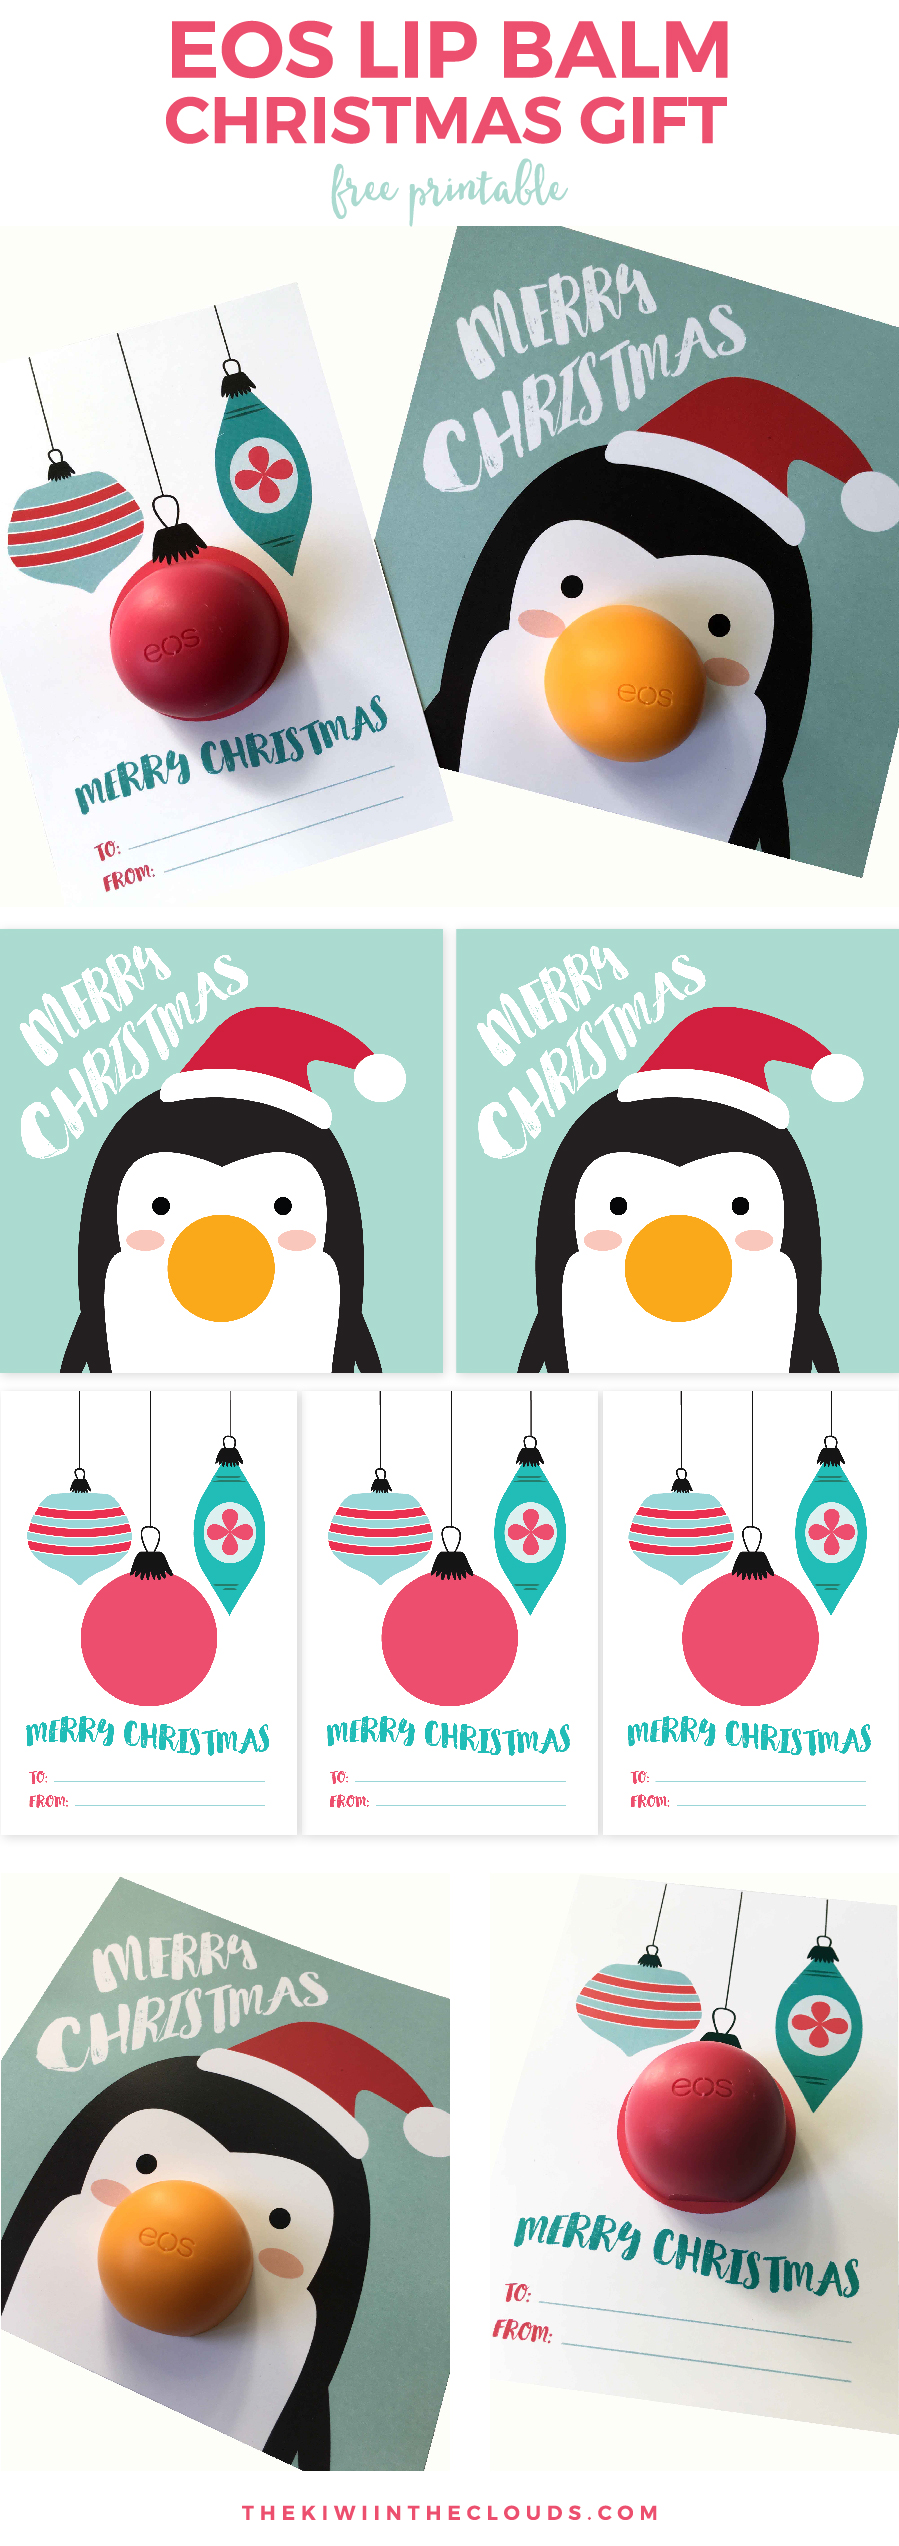 Neighbor Christmas Gift Ideas | EOS Lip Balm Christmas Gift | The Kiwi In The Clouds